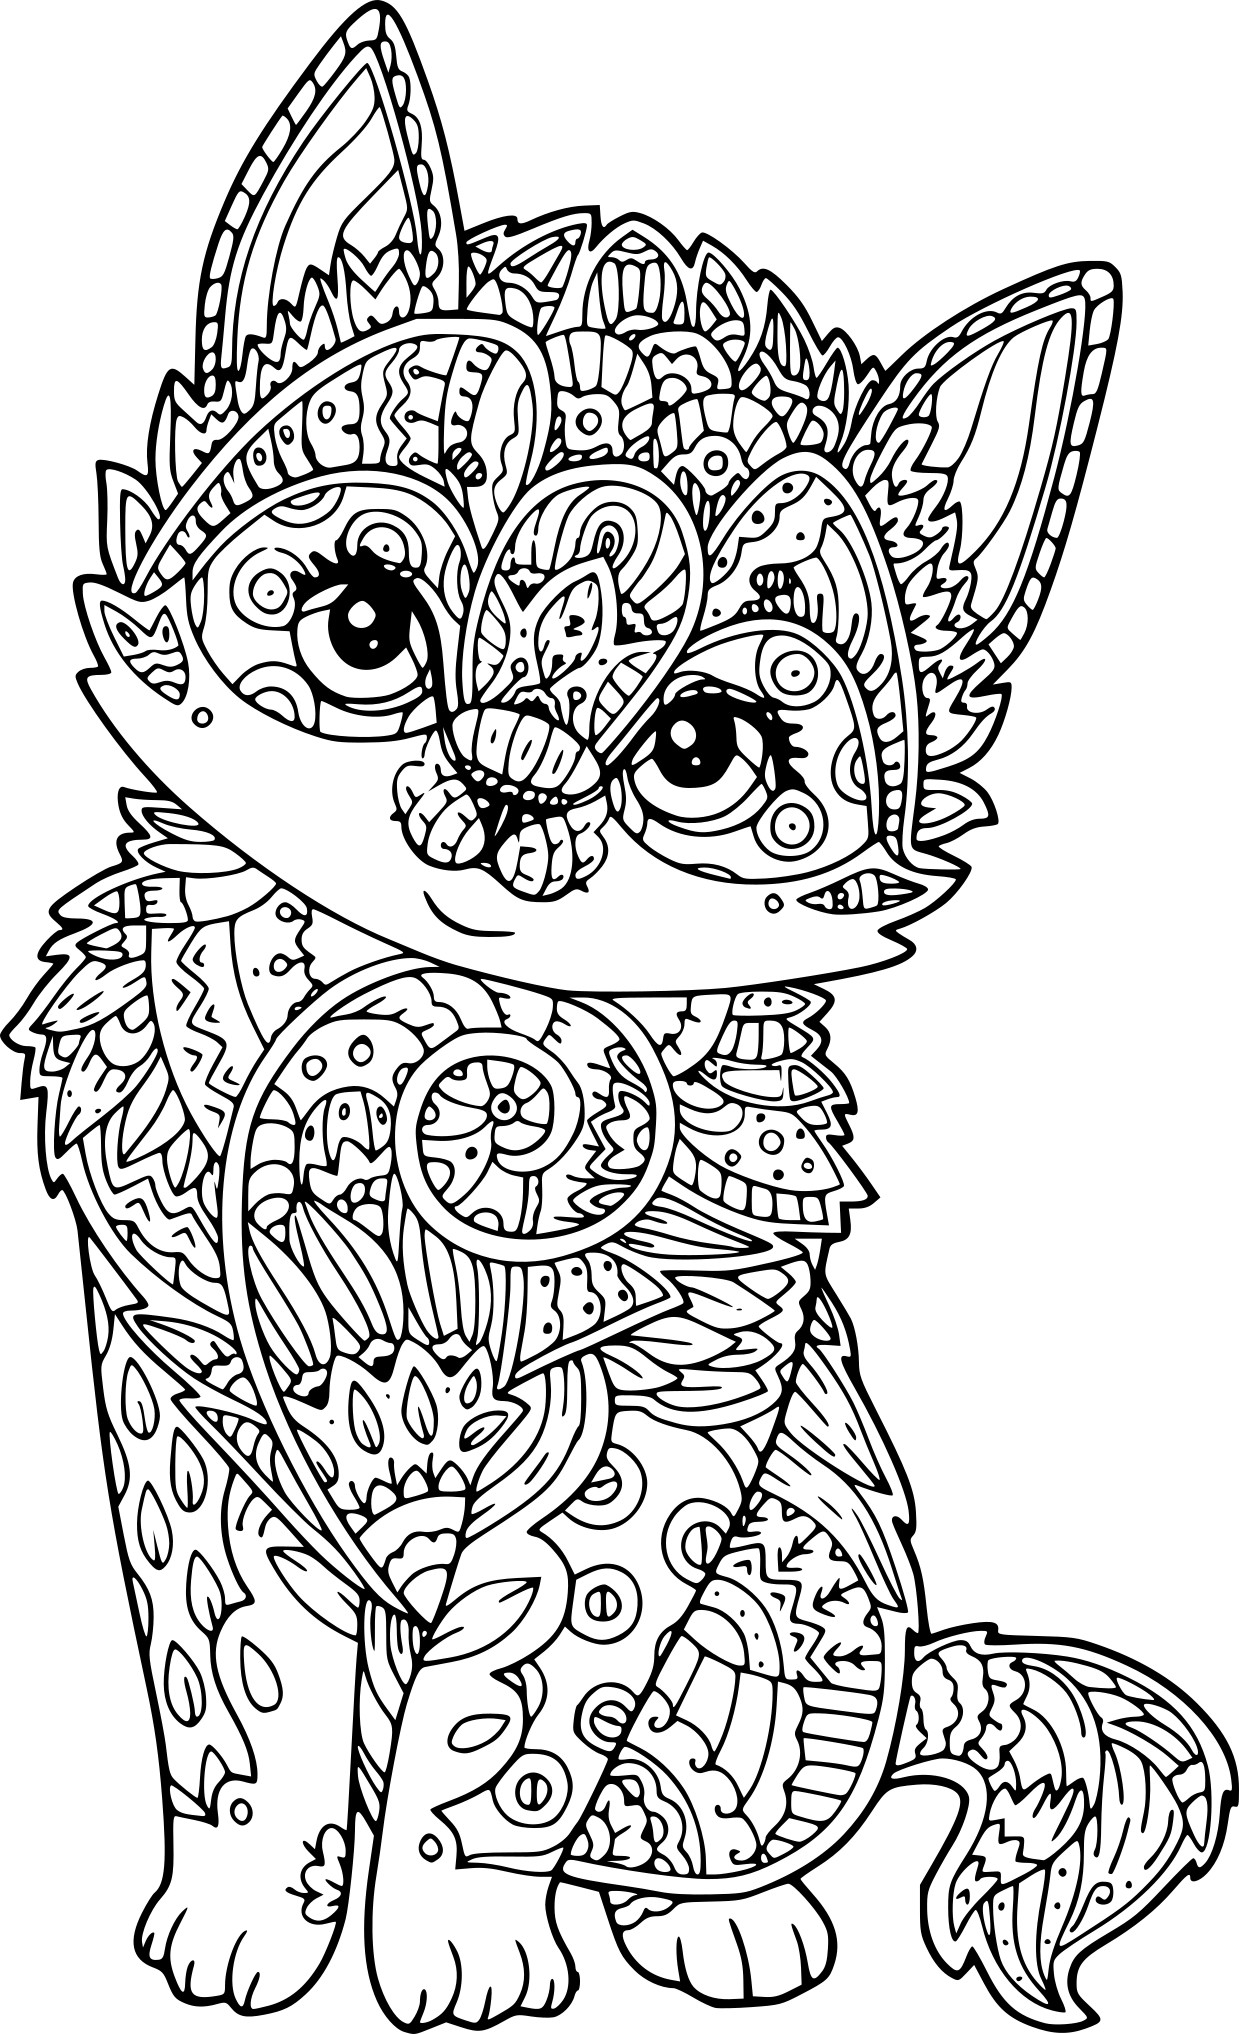 Coloriage chat antistress imprimer sur coloriages info - Coloriage de chat ...